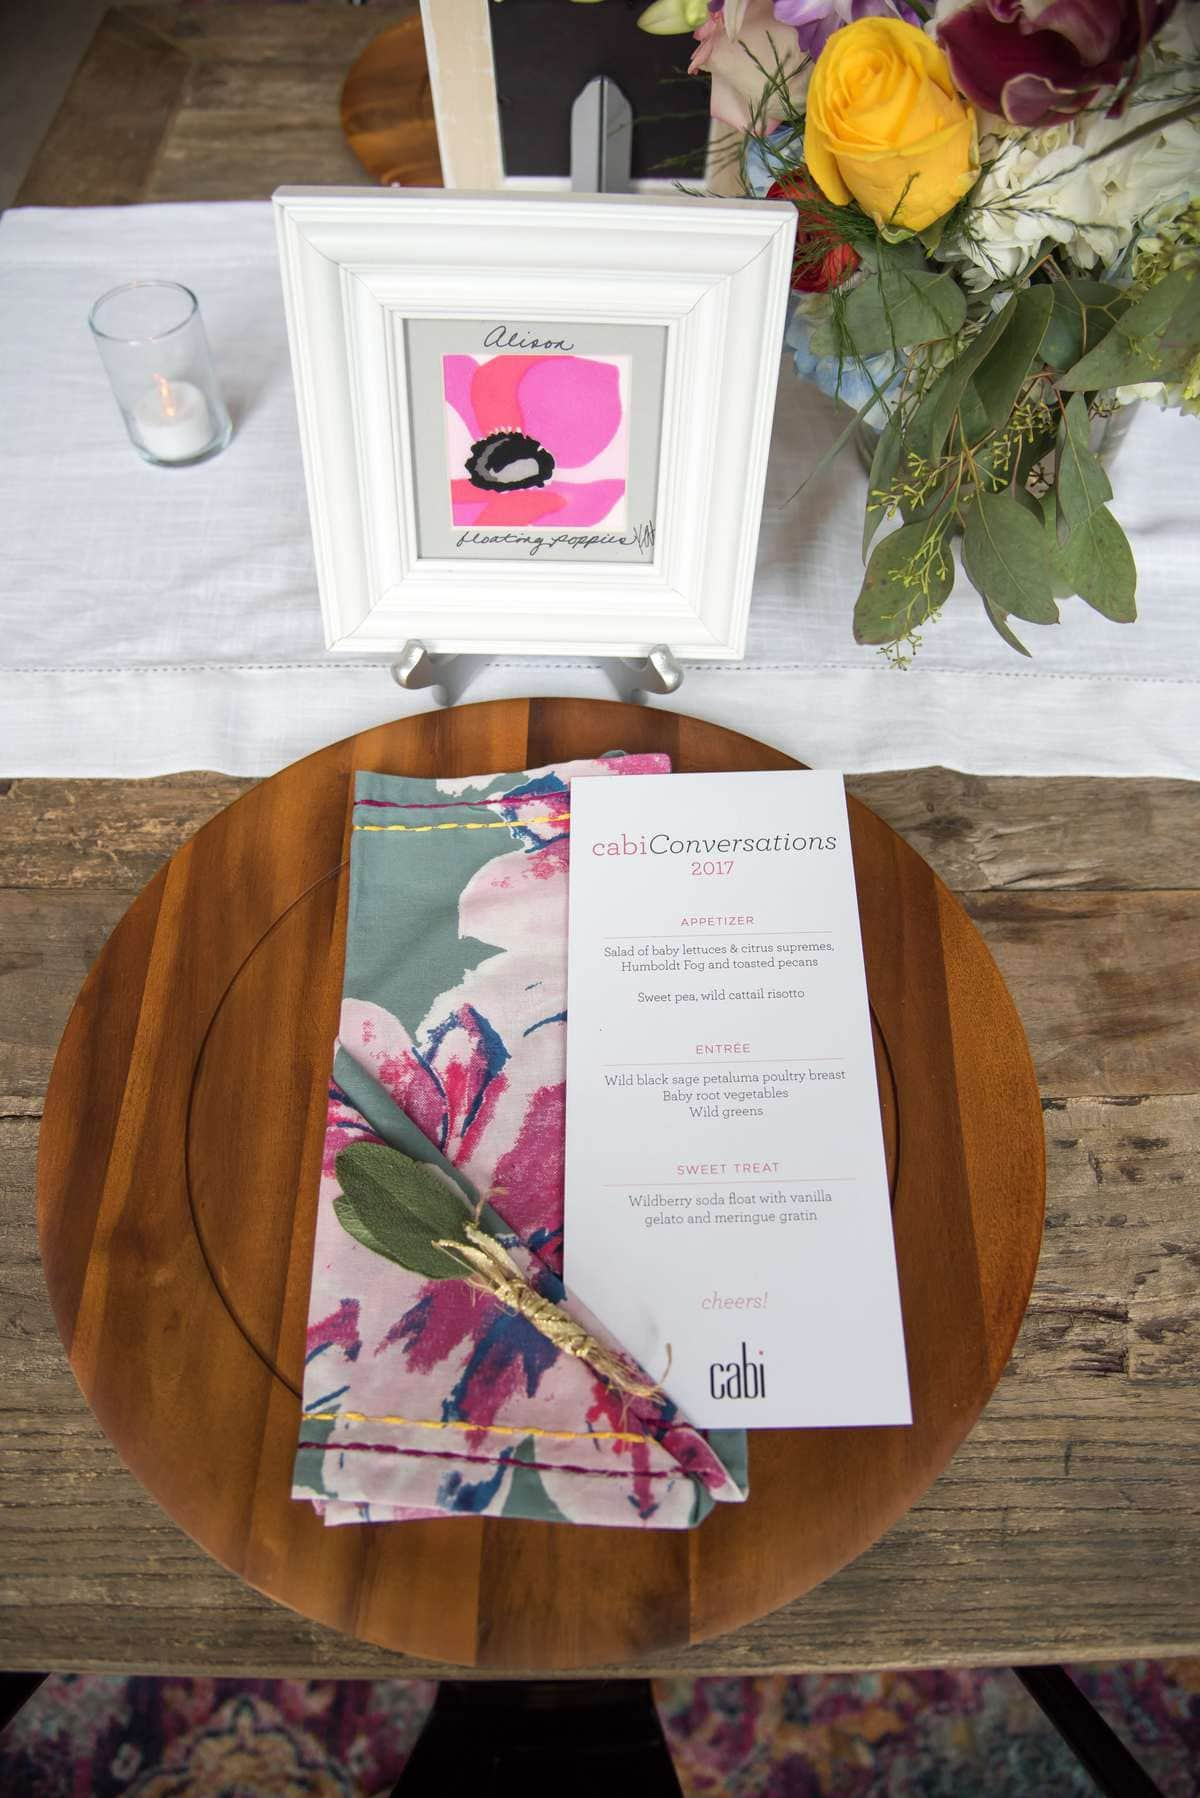 photo of a wood platter with a menu on top of it. Behind it is a square picture frame with a poppy painting inside, and the name Alison written in script above the poppy